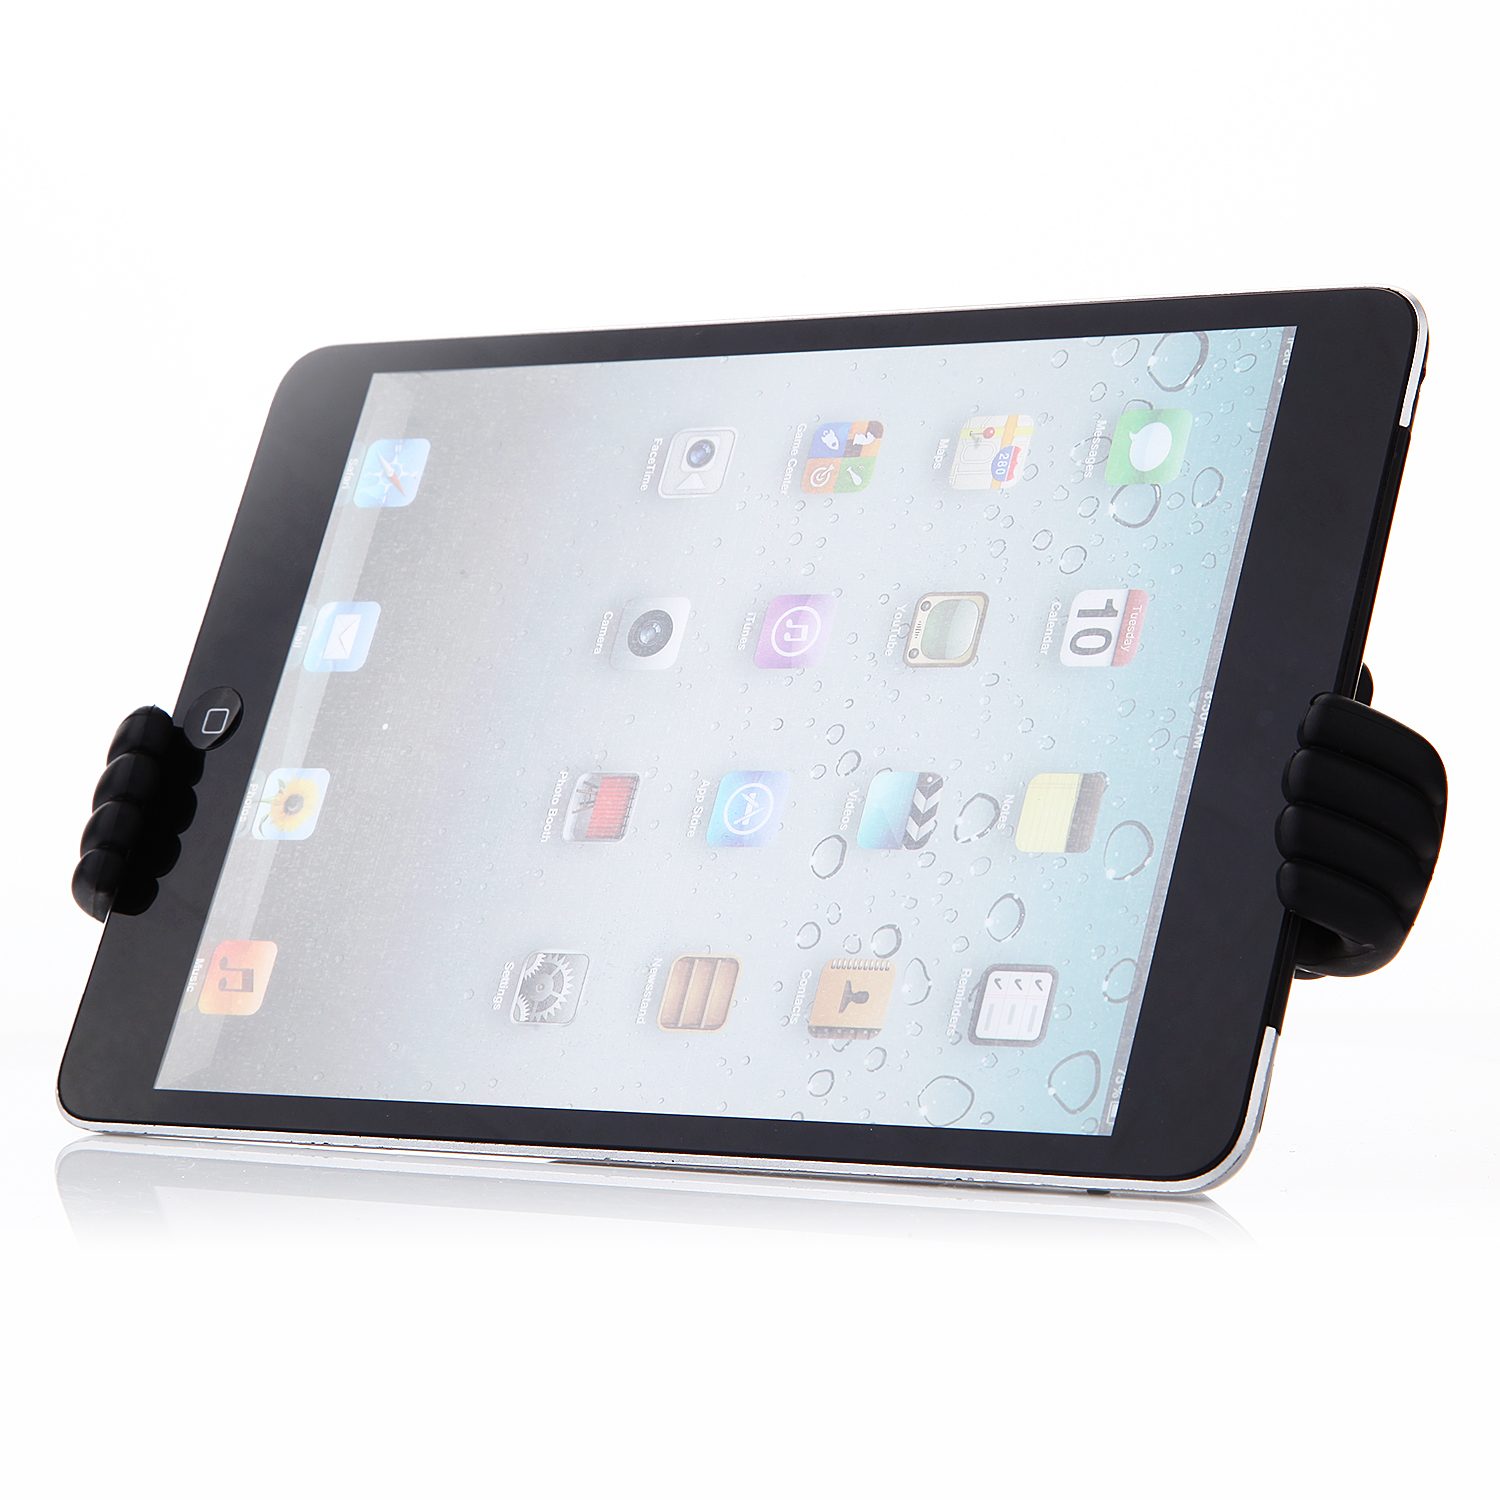 OK Stand Thumb OK Design Stand Holder for Smartphone and Tablet Black